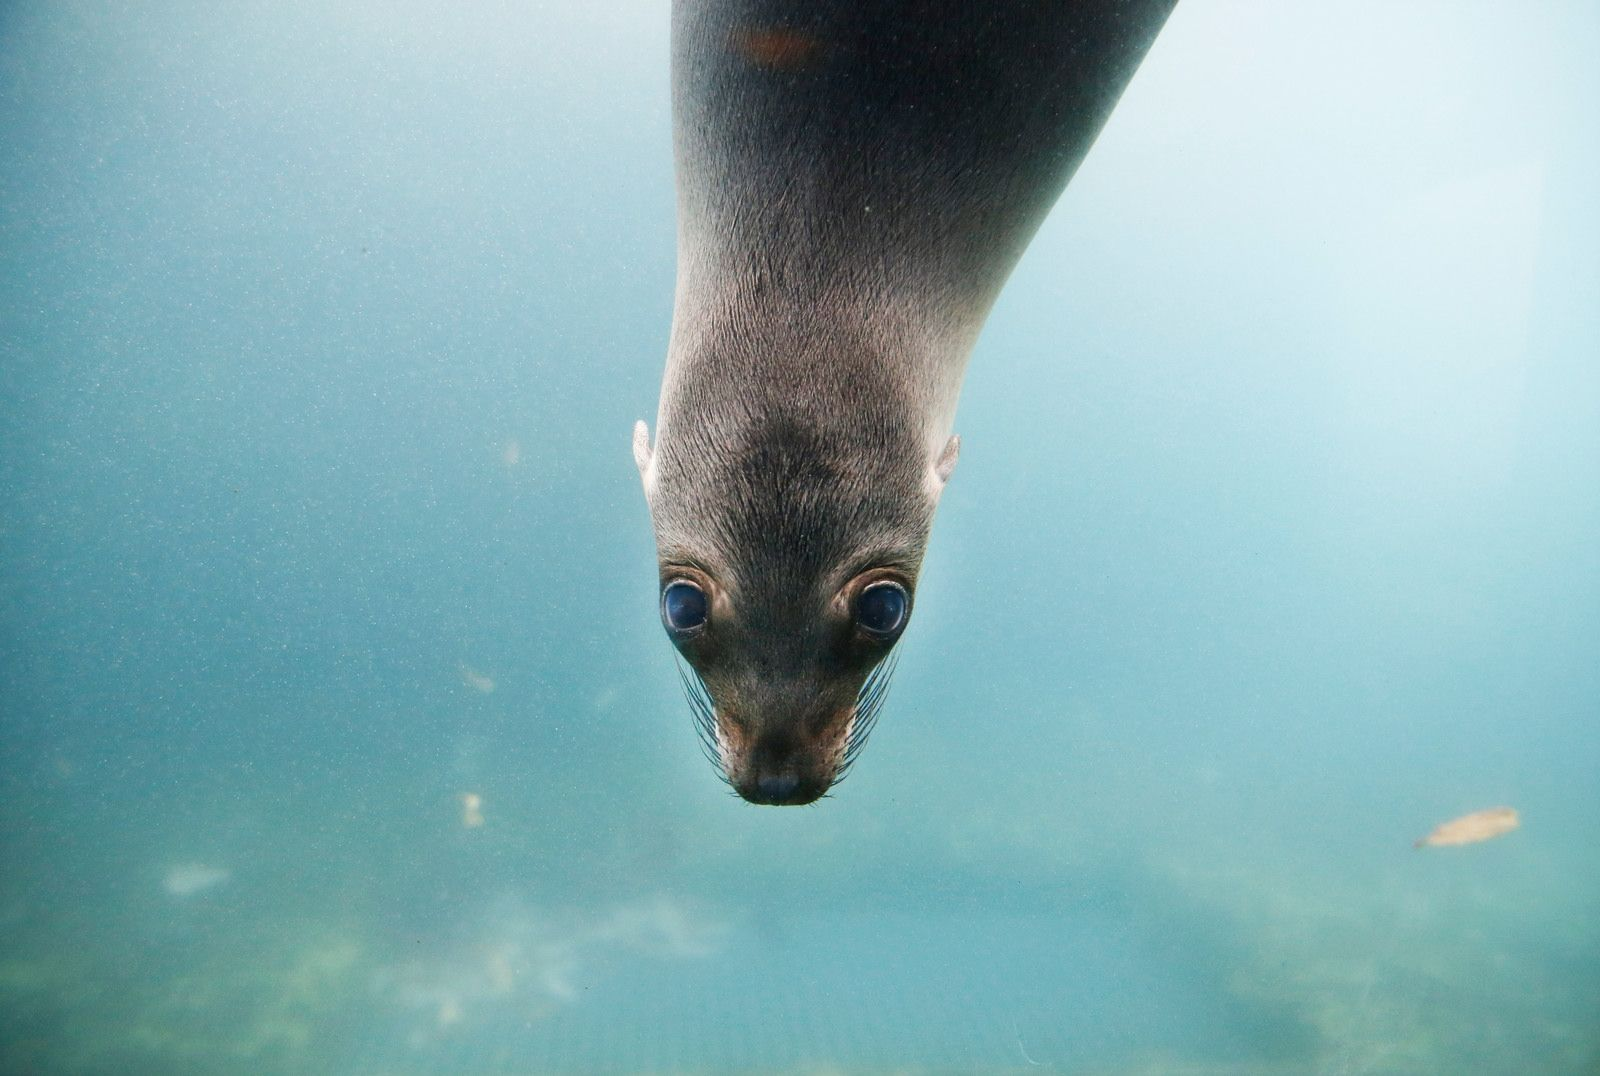 Toni the 7-month-old baby sea lion is the new darling at the Buffalo Zoo.